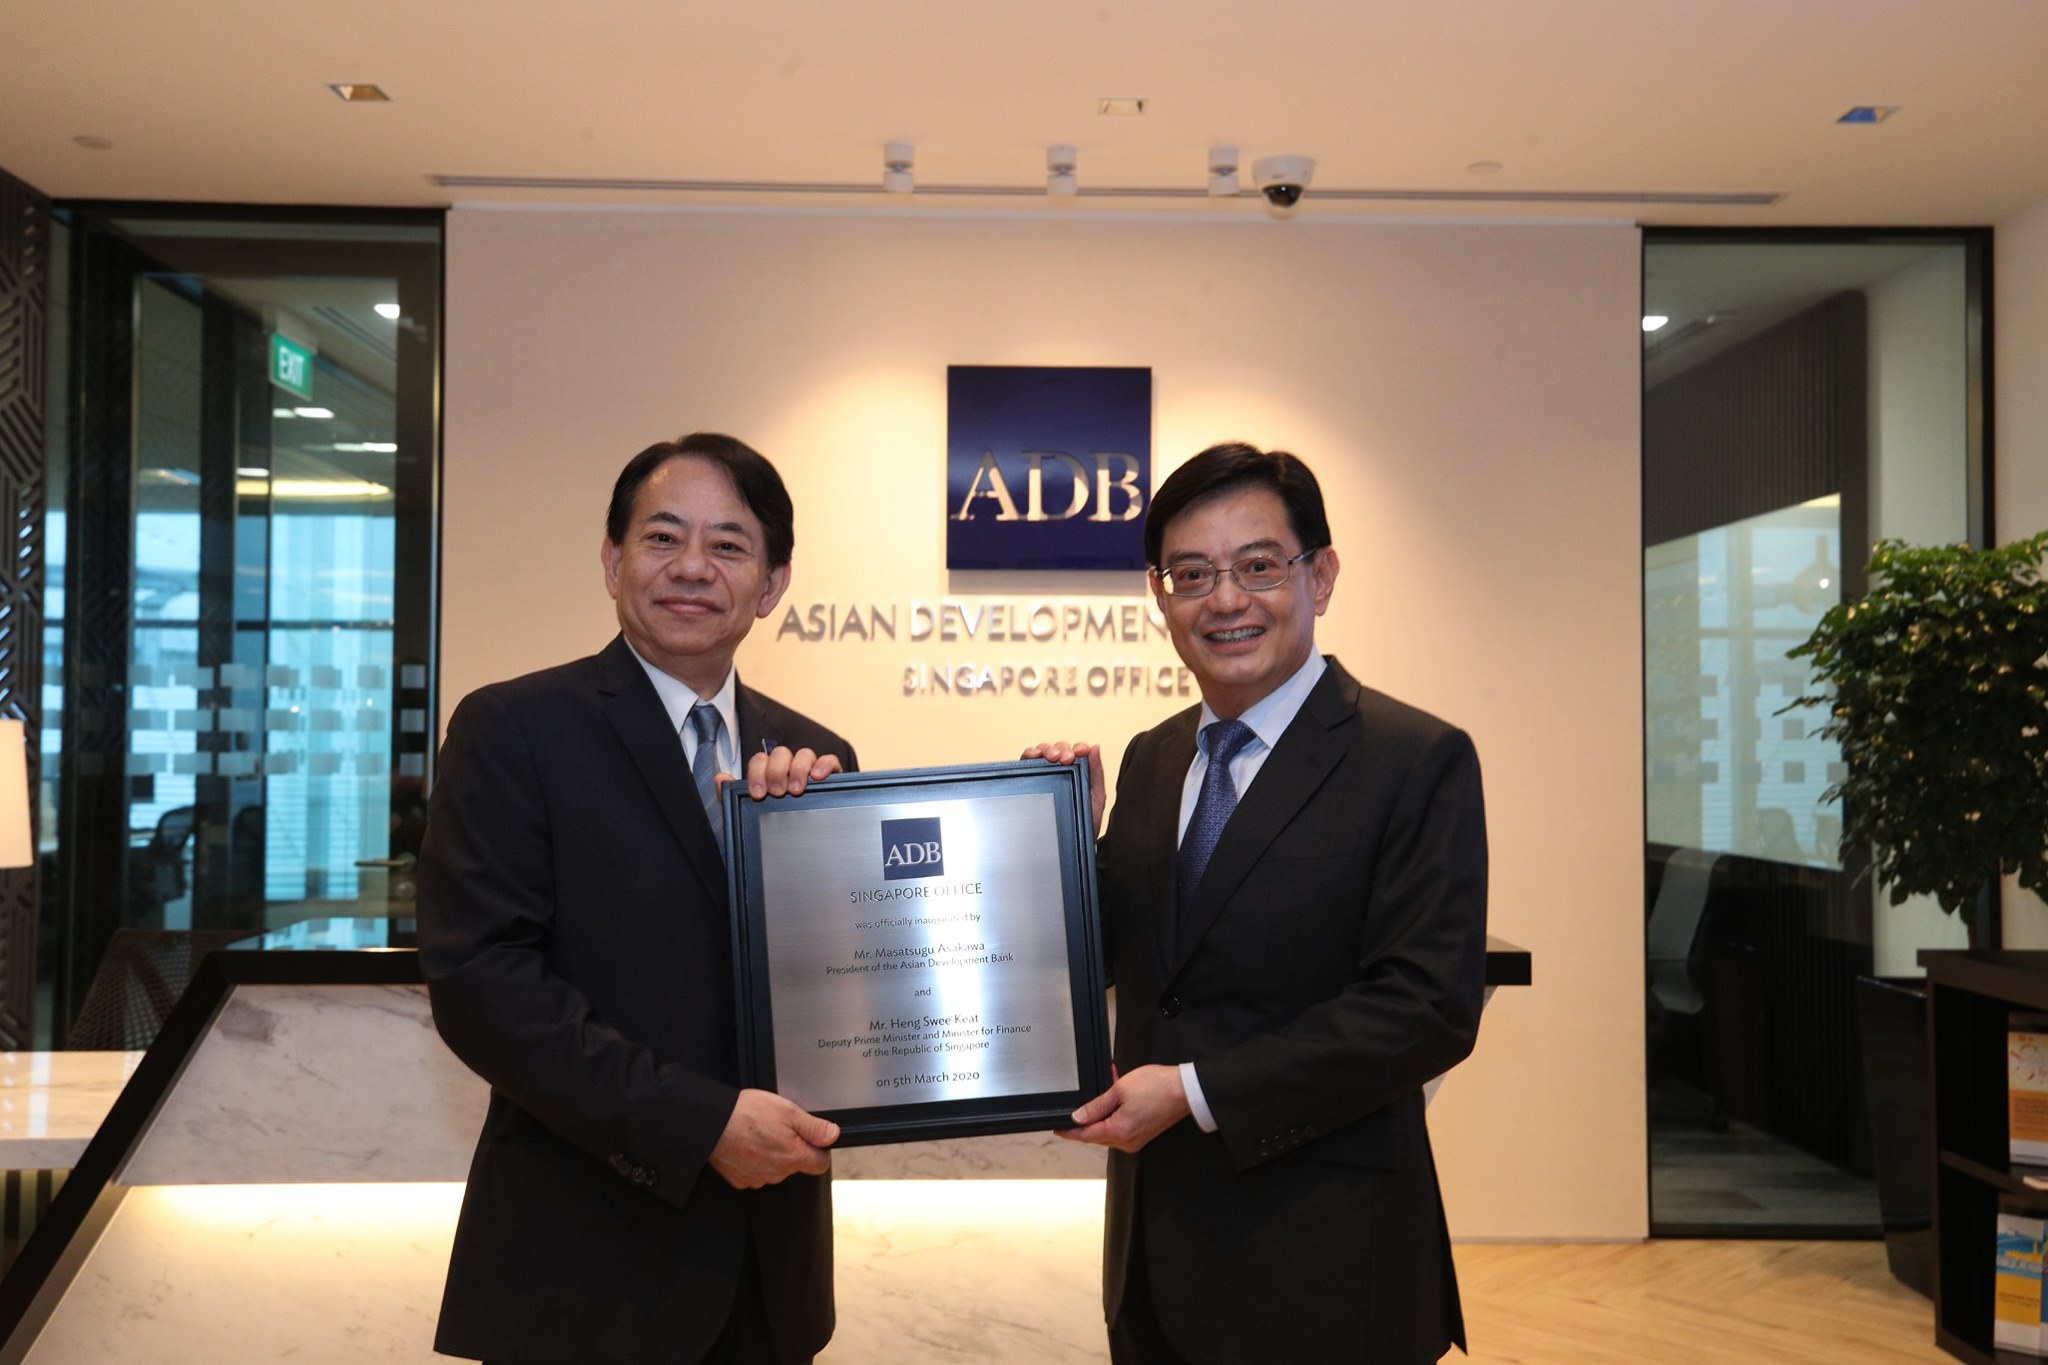 President of the Asian Development Bank Masatugu Asakawa and Singapore Deputy Prime Minister and Minister for Finance Heng Swee Keat launched the new ADB office in Singapore on March 5, 2020. Photo courtesy: Facebook/Heng Swee Keat